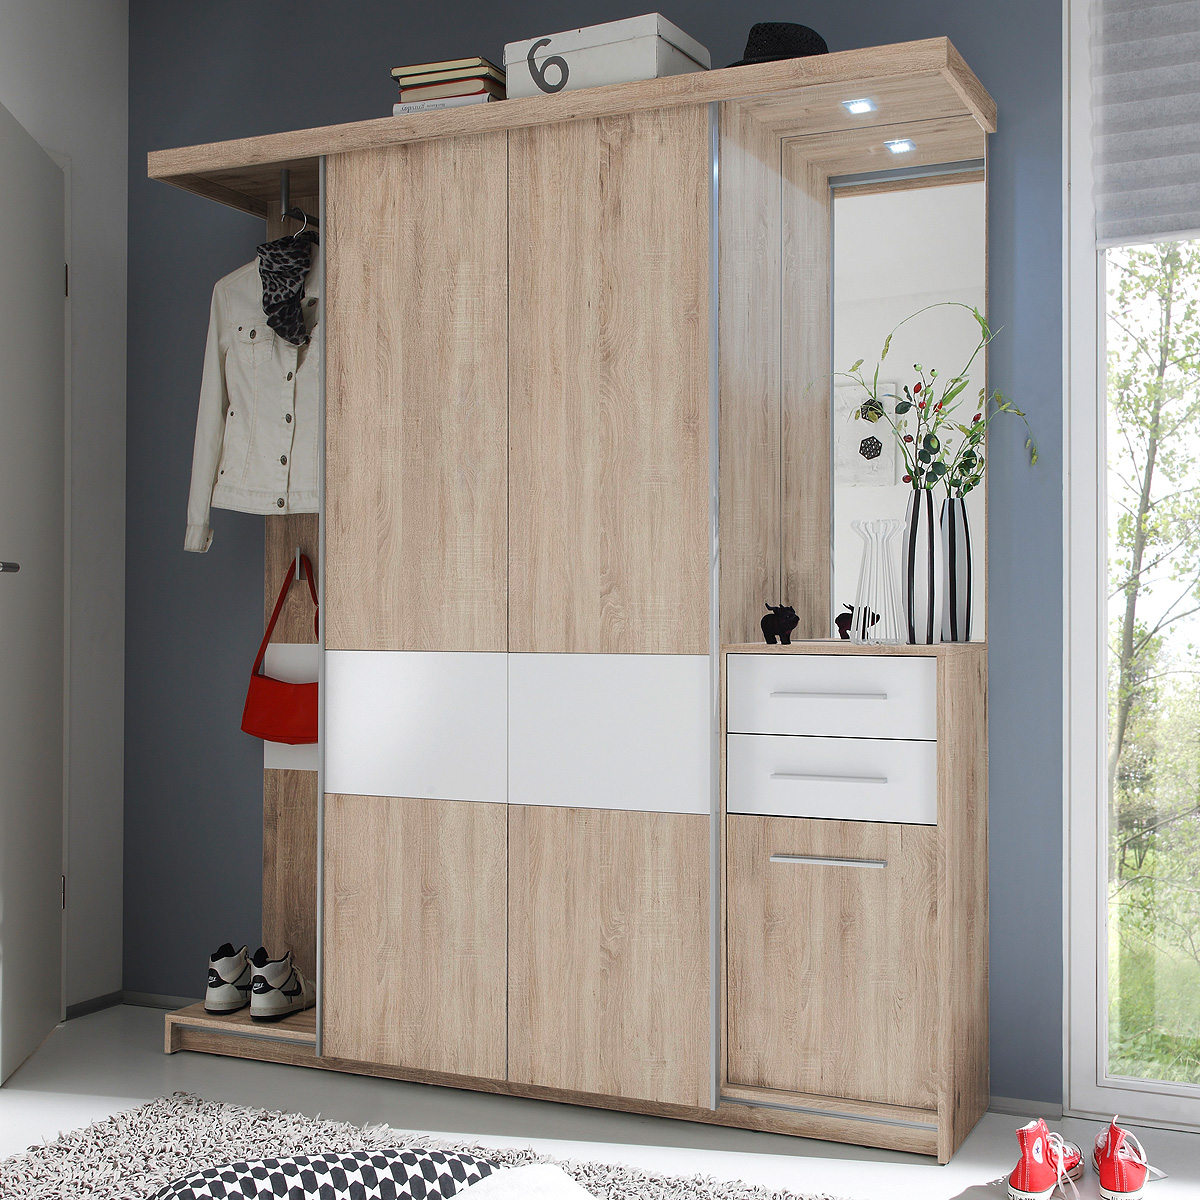 kompaktgarderobe swing garderobe flurm bel sonoma eiche wei mit led ebay. Black Bedroom Furniture Sets. Home Design Ideas